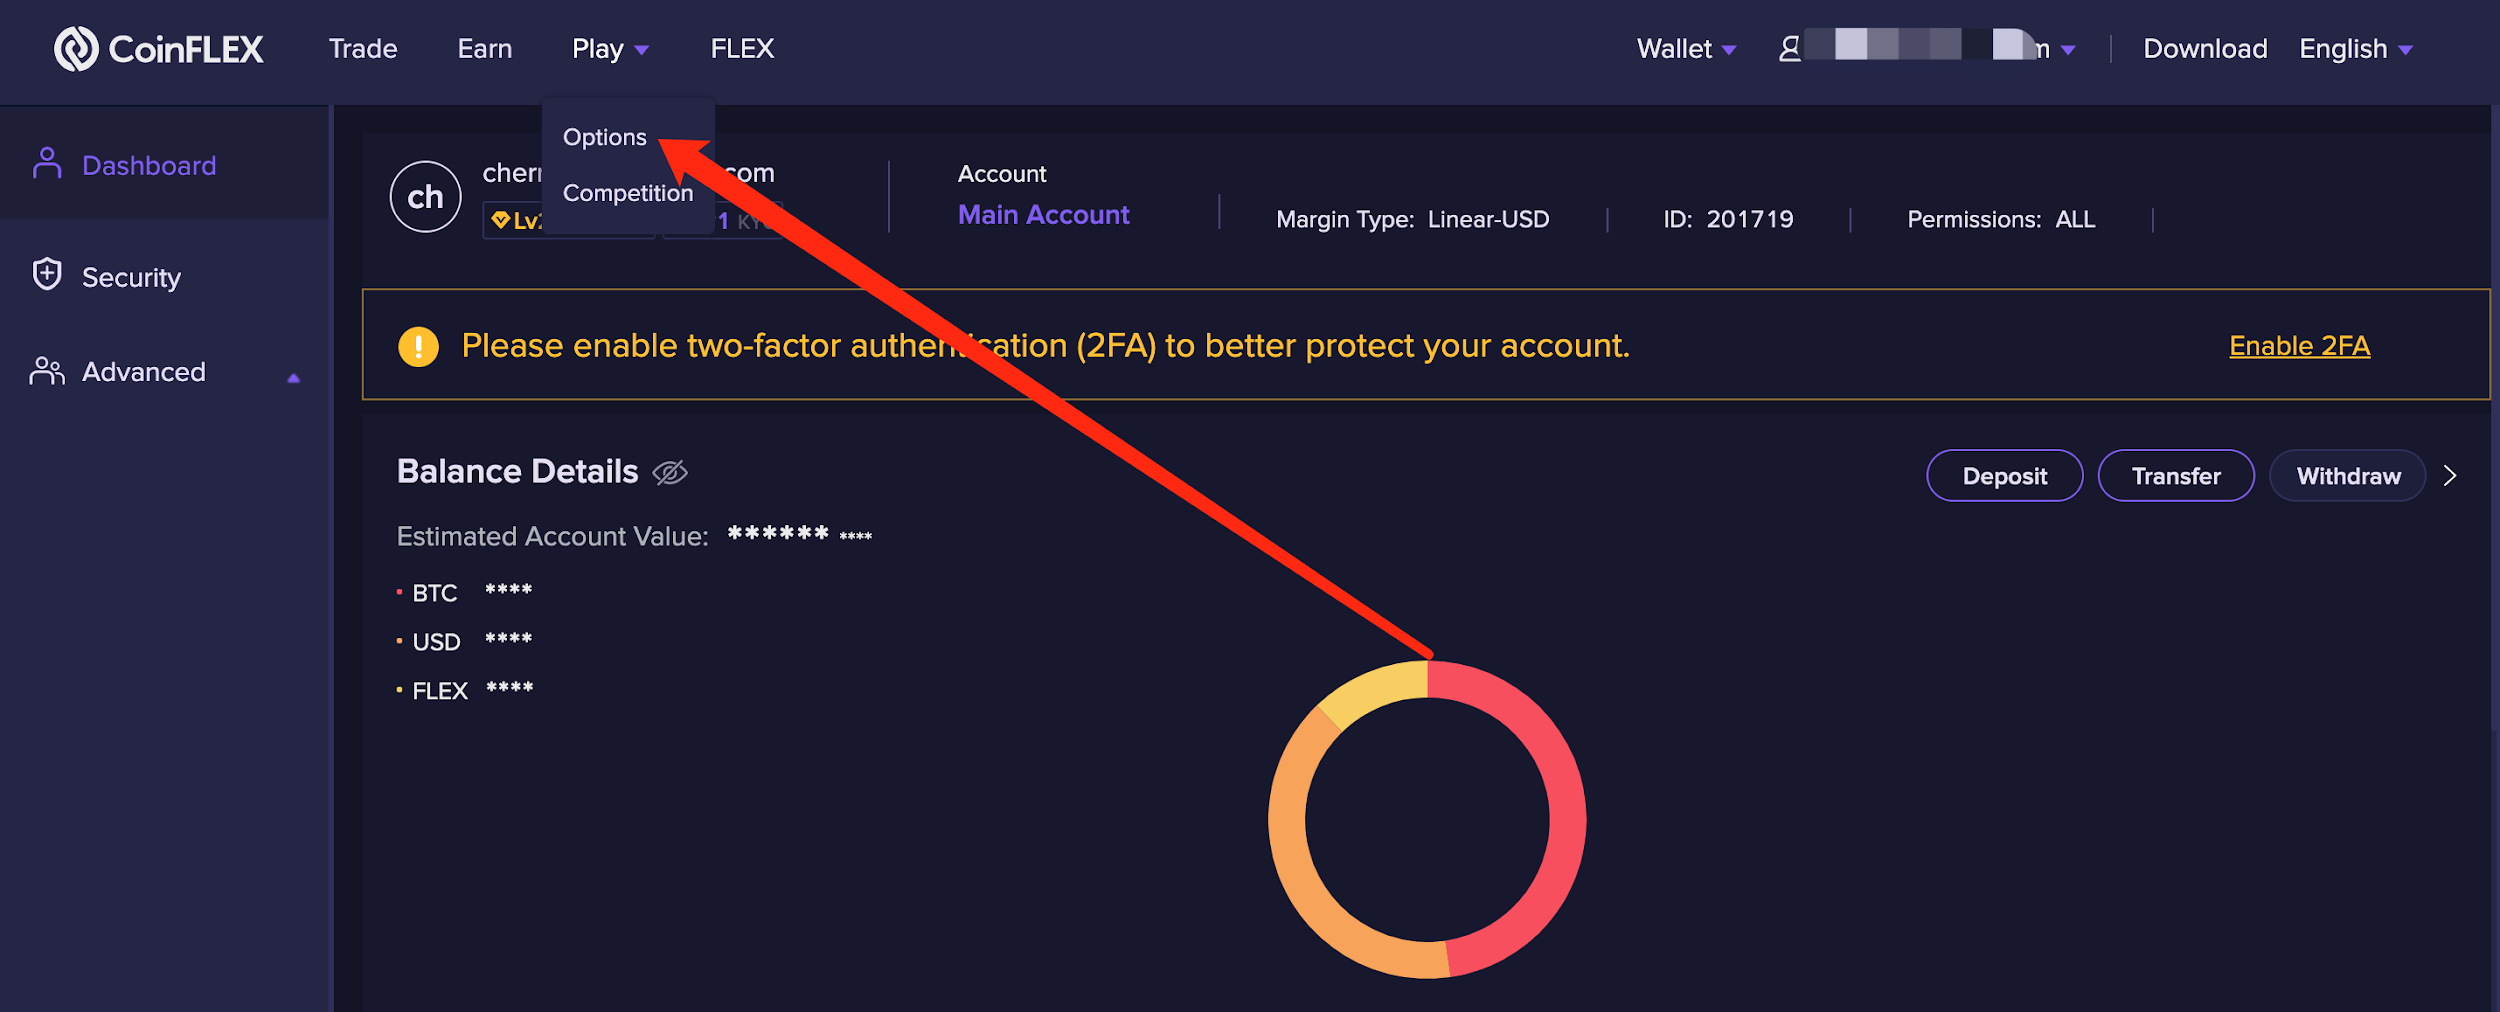 W1 2.2.6 CoinFLEX Options